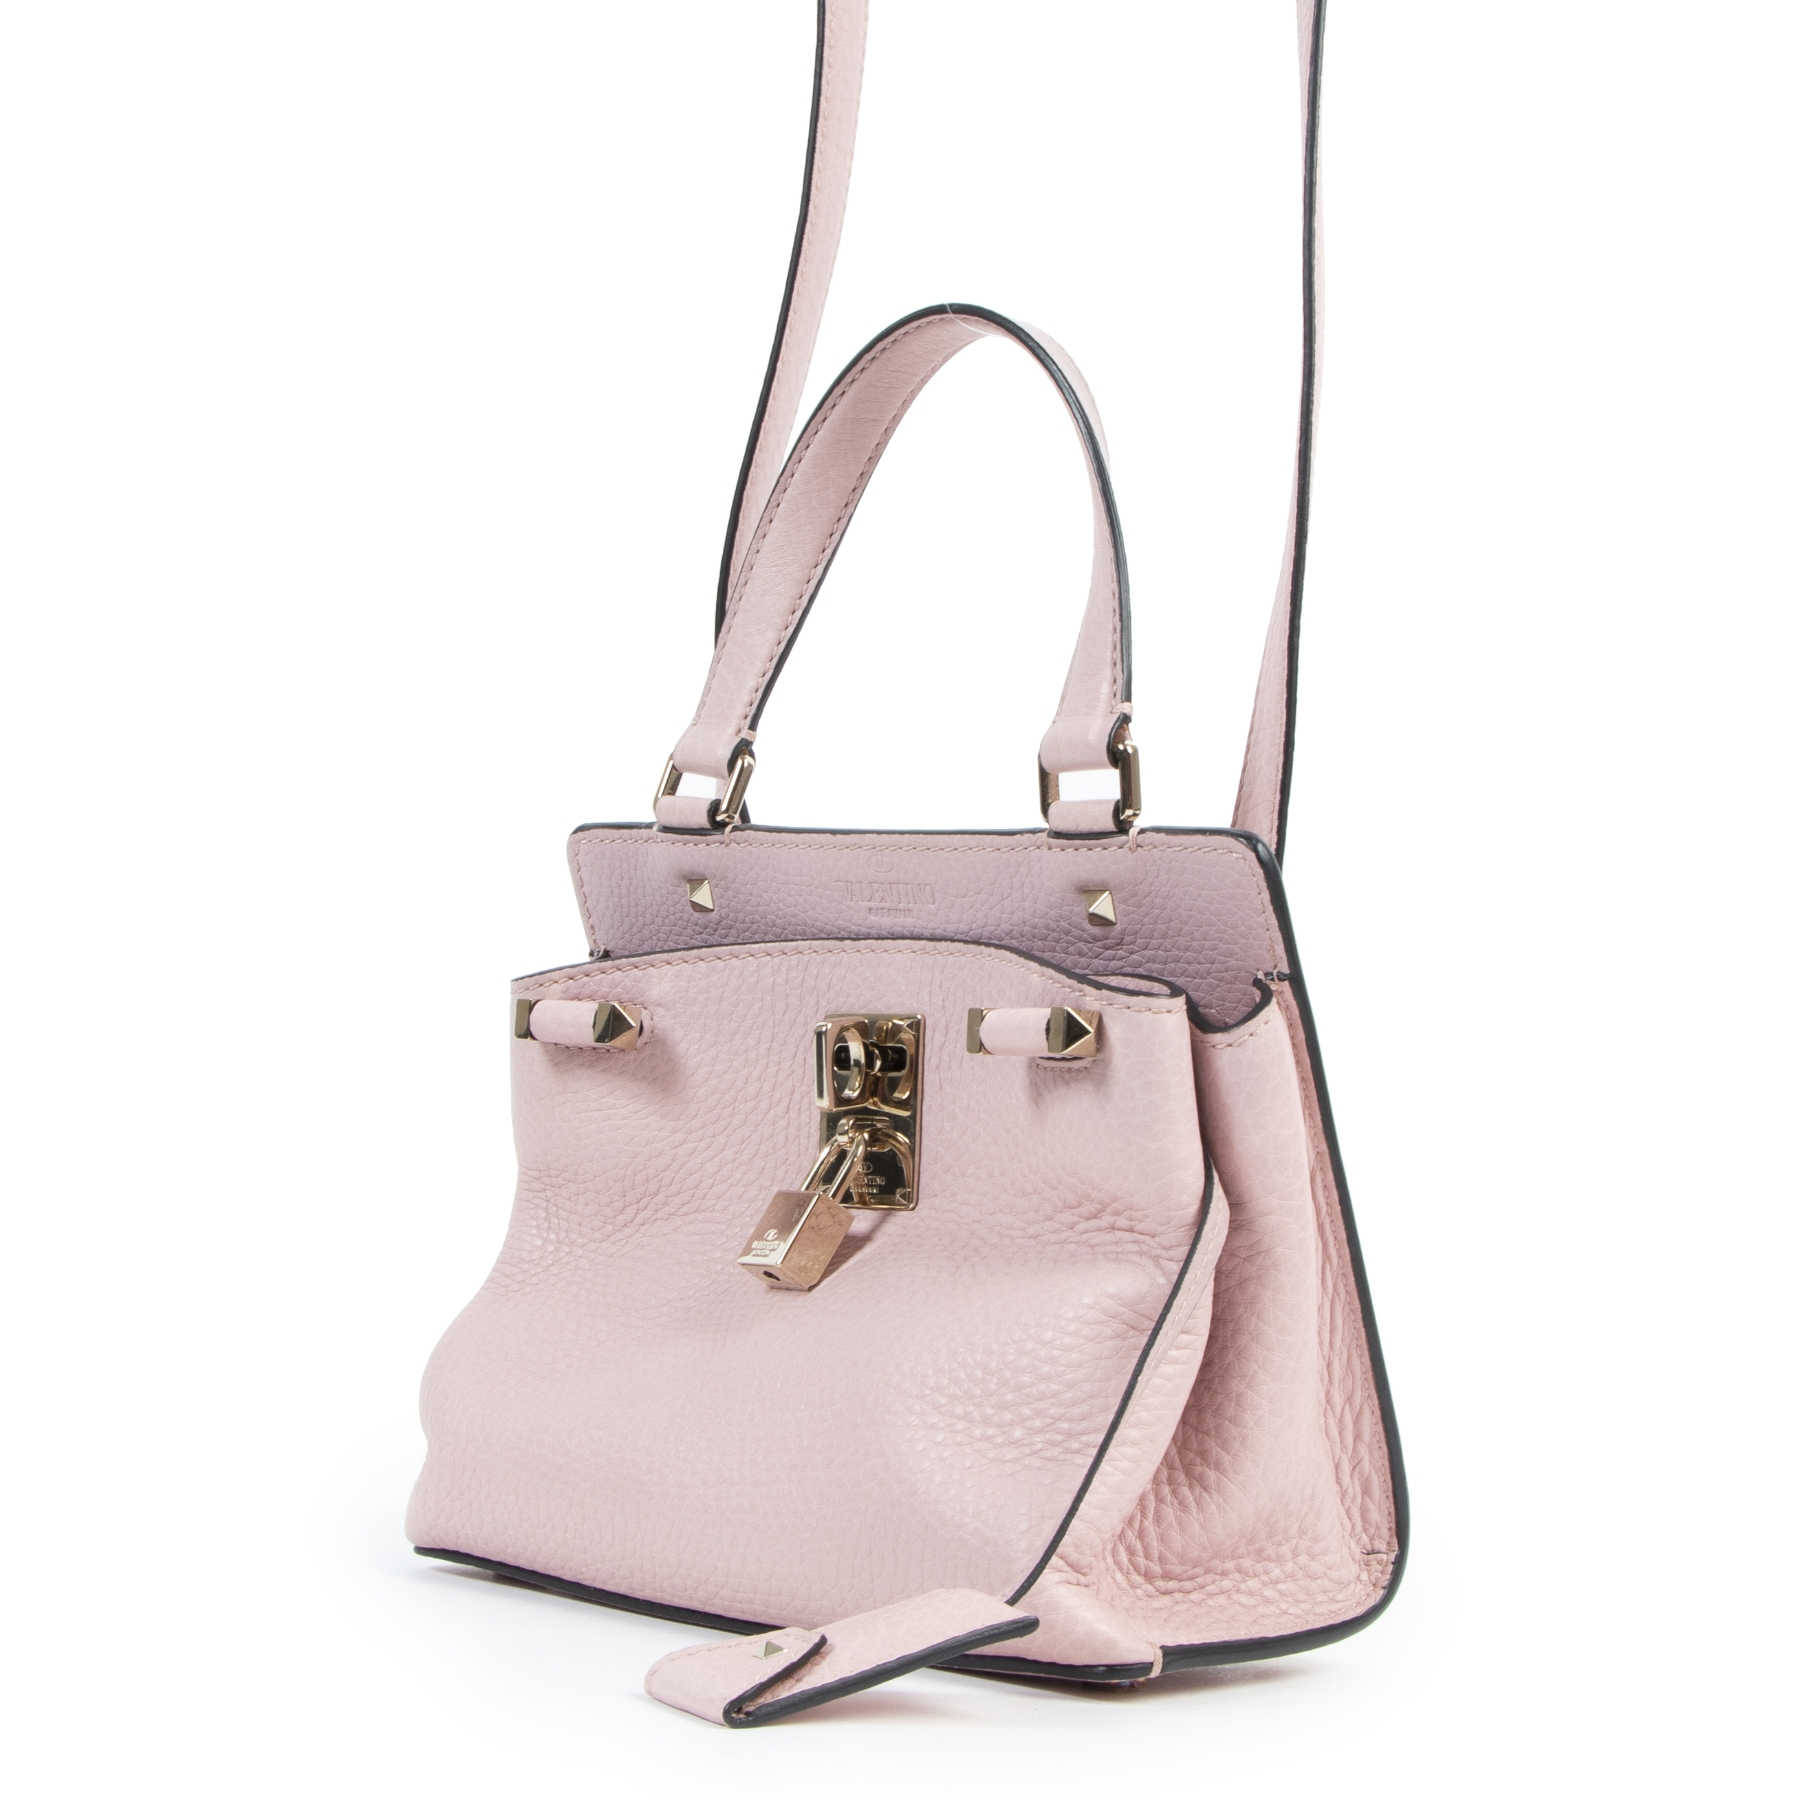 Valentino Pink Leather Mini Bag